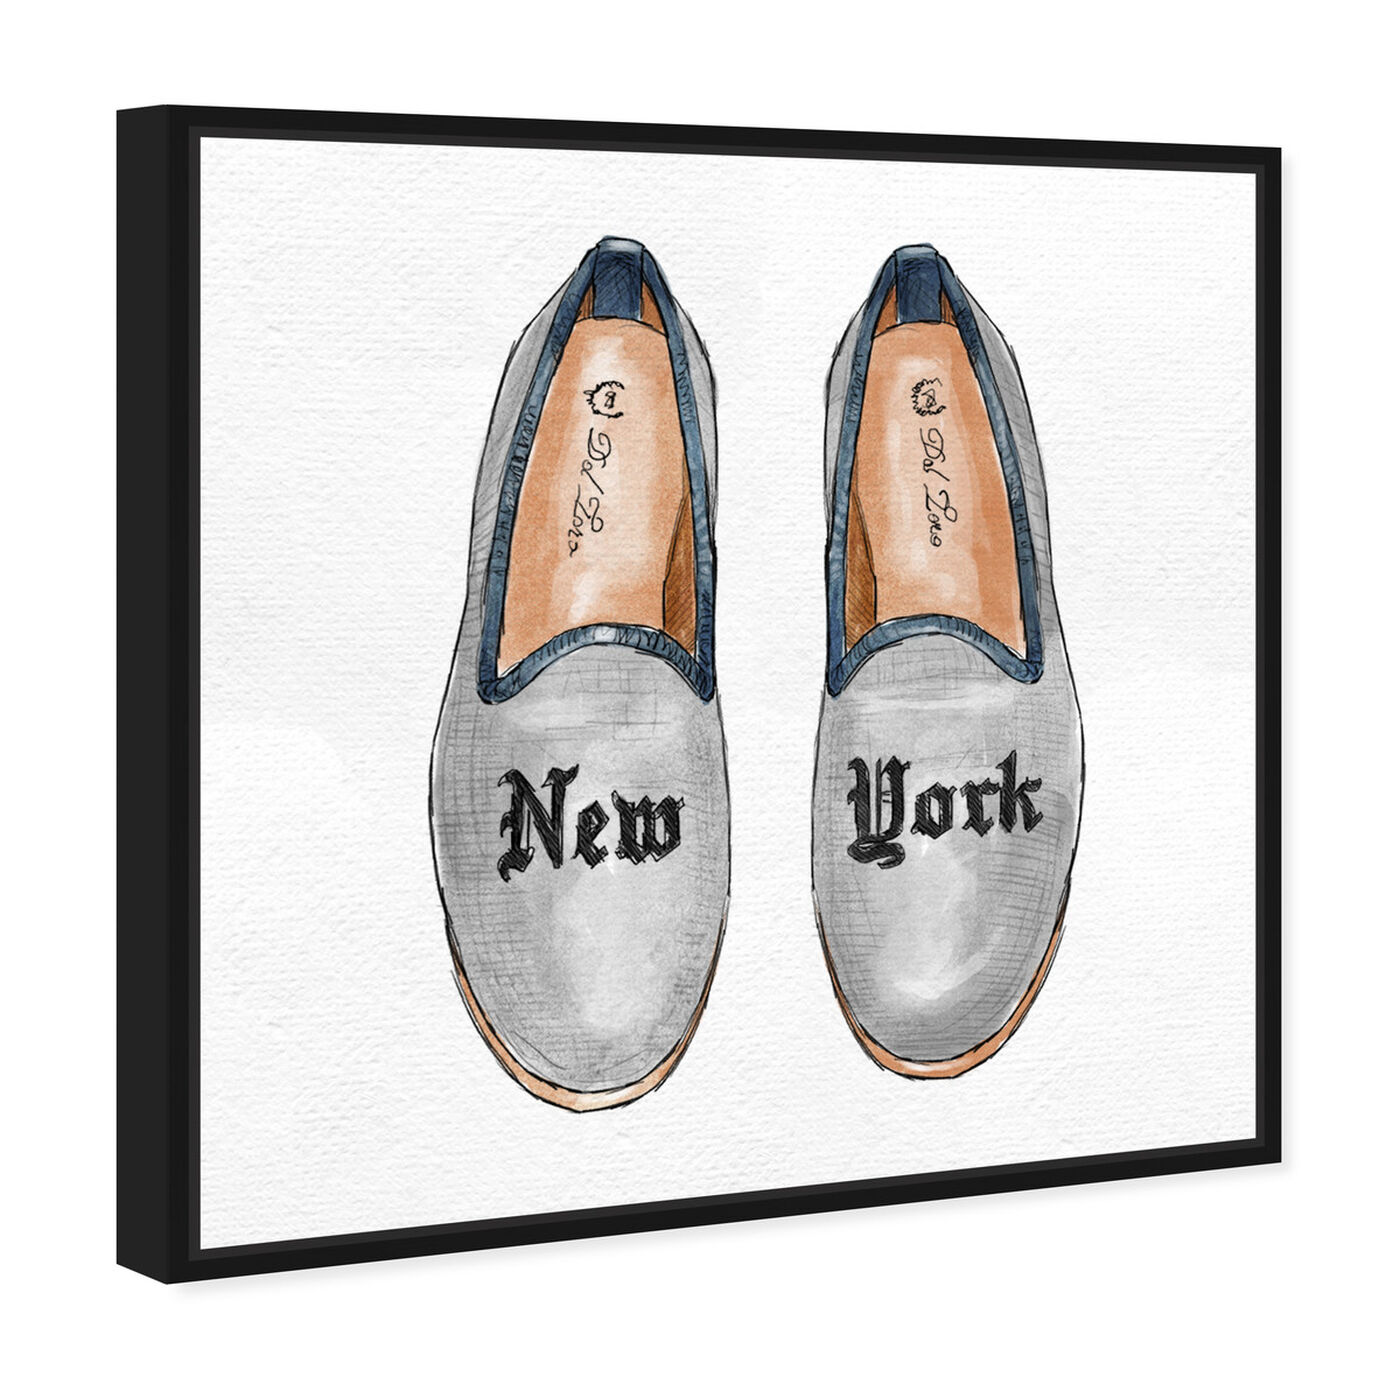 Angled view of New York Slippers featuring fashion and glam and shoes art.